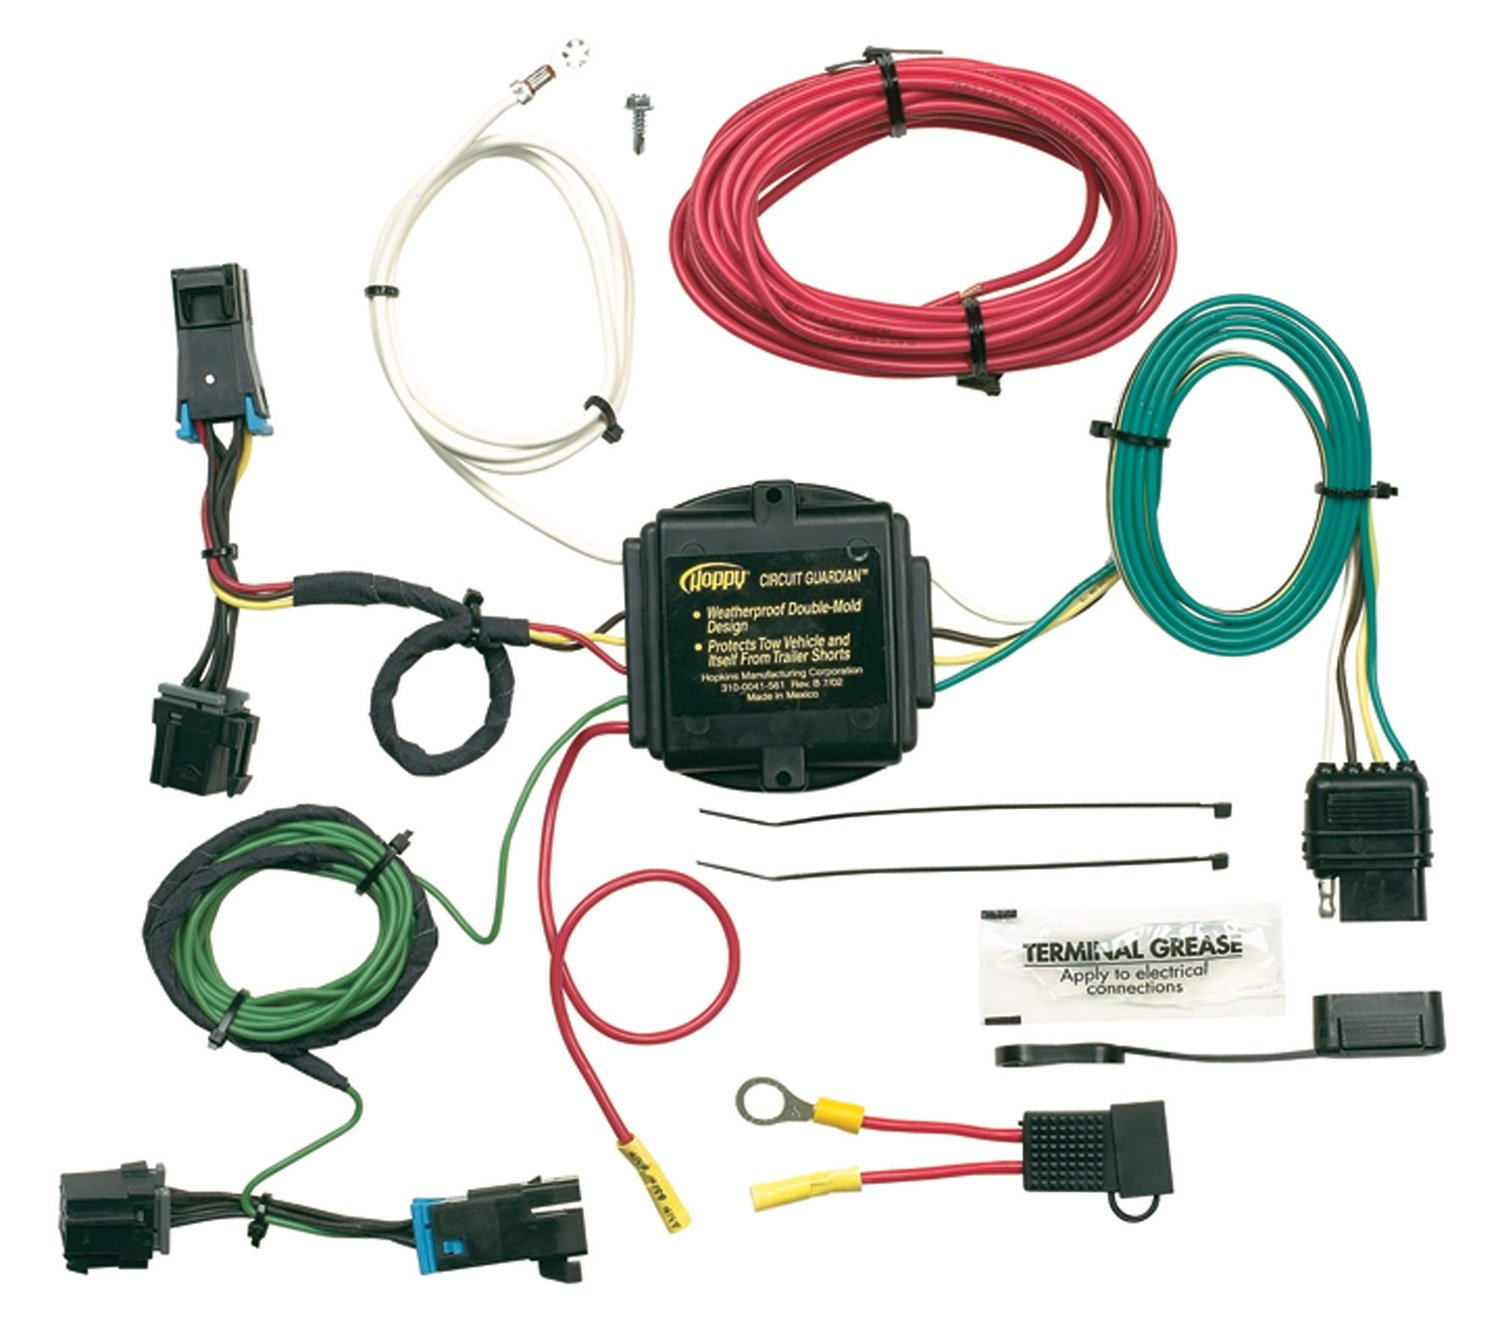 Hopkins 41345 Plug In Simple Vehicle Wiring Kit Automotive Trailer Harness Converter Box